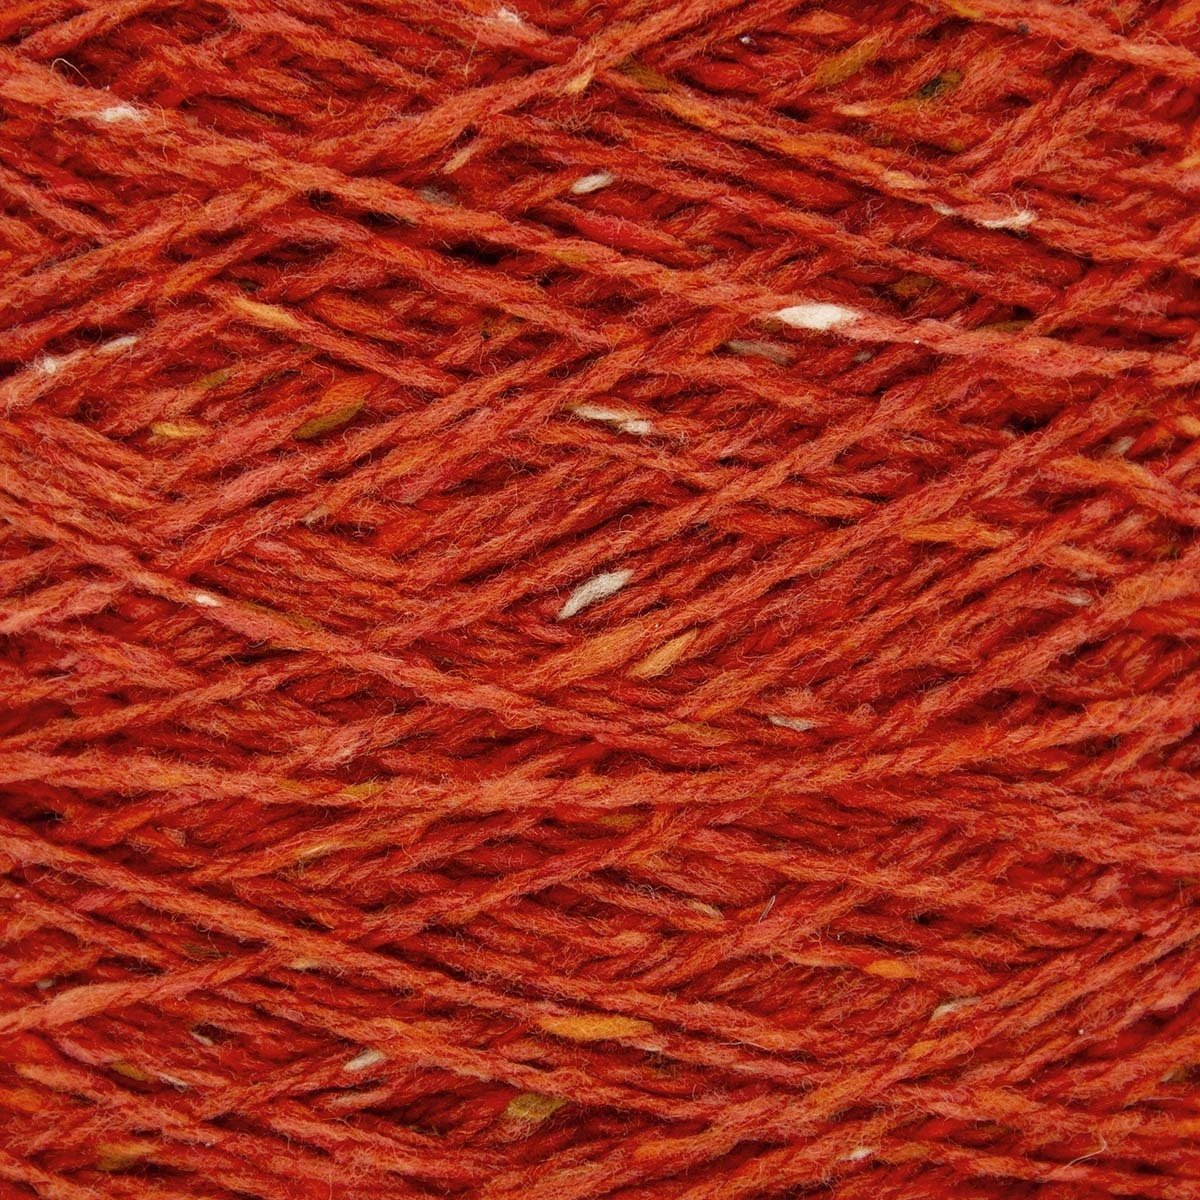 Knoll Yarns Soft Donegal (двойной твид) - 5230